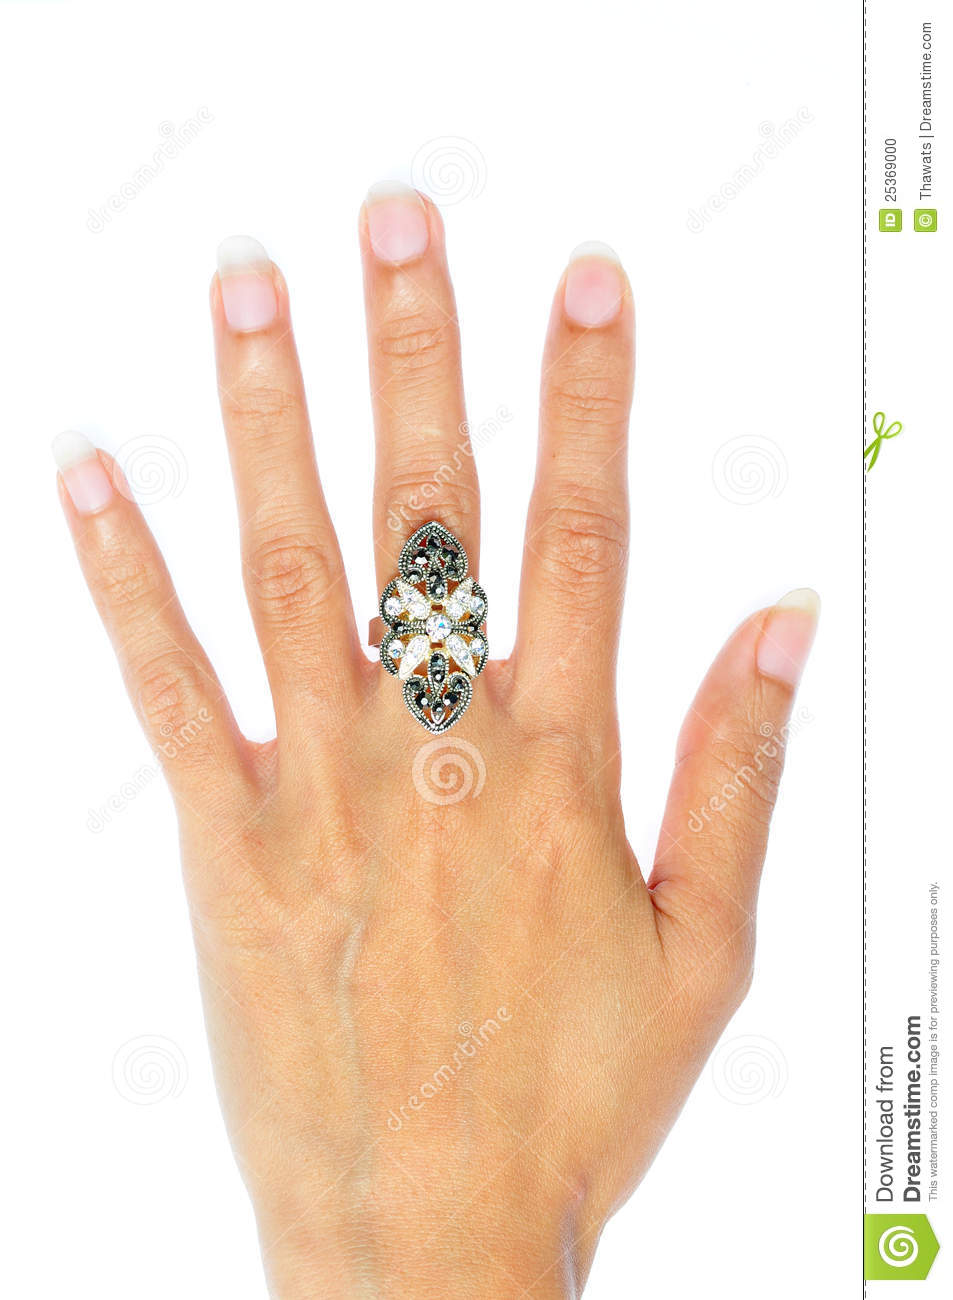 Engagement Ring In Hand Stock Photo